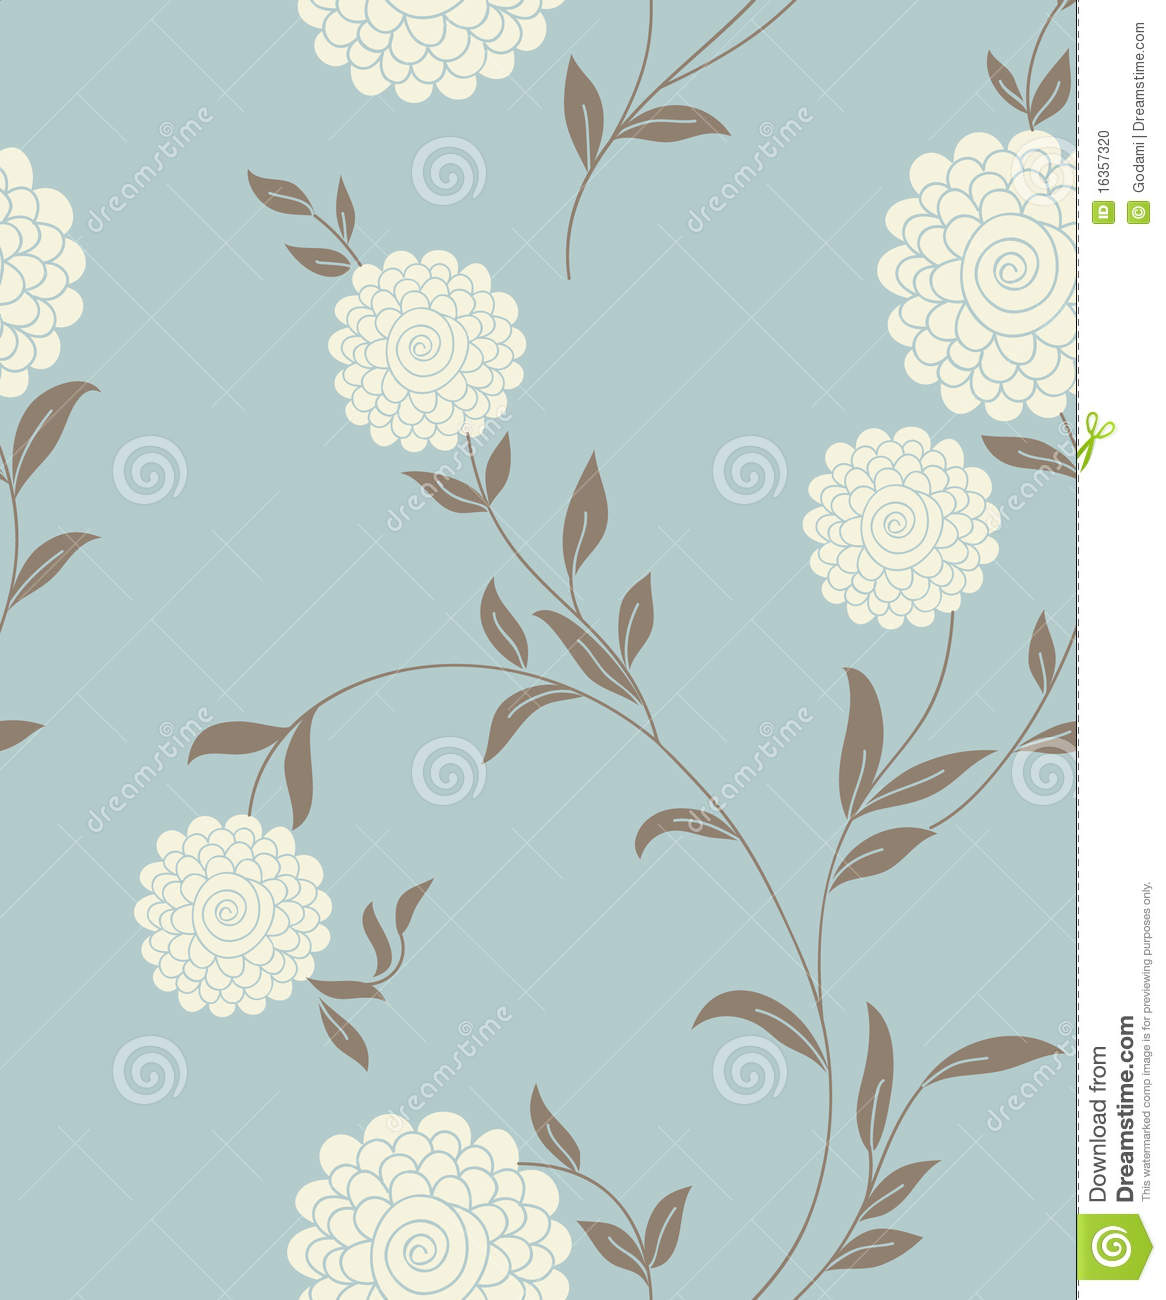 Light Floral Vintage Seamless Pattern Cartoon Plant